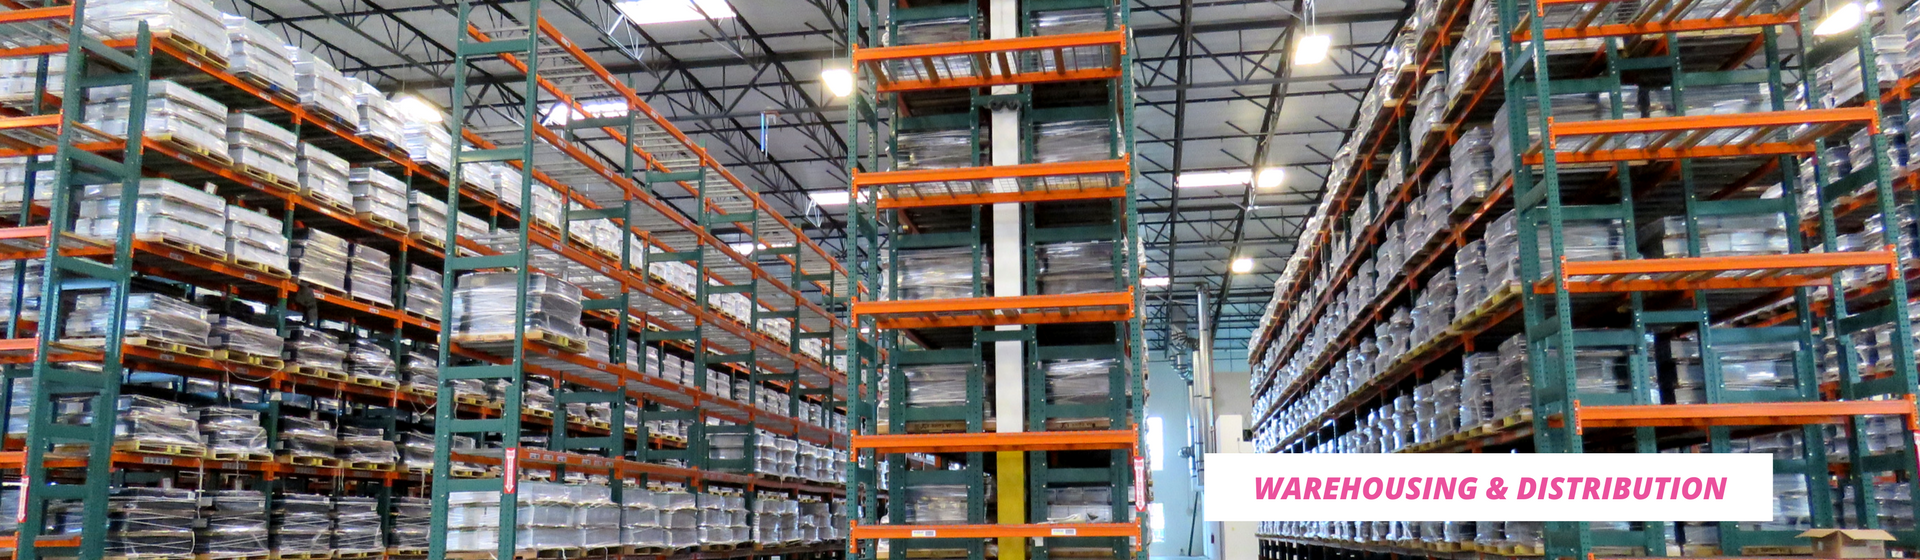 Warehousing and Distribution - 3pl - Dependable Supply Chain